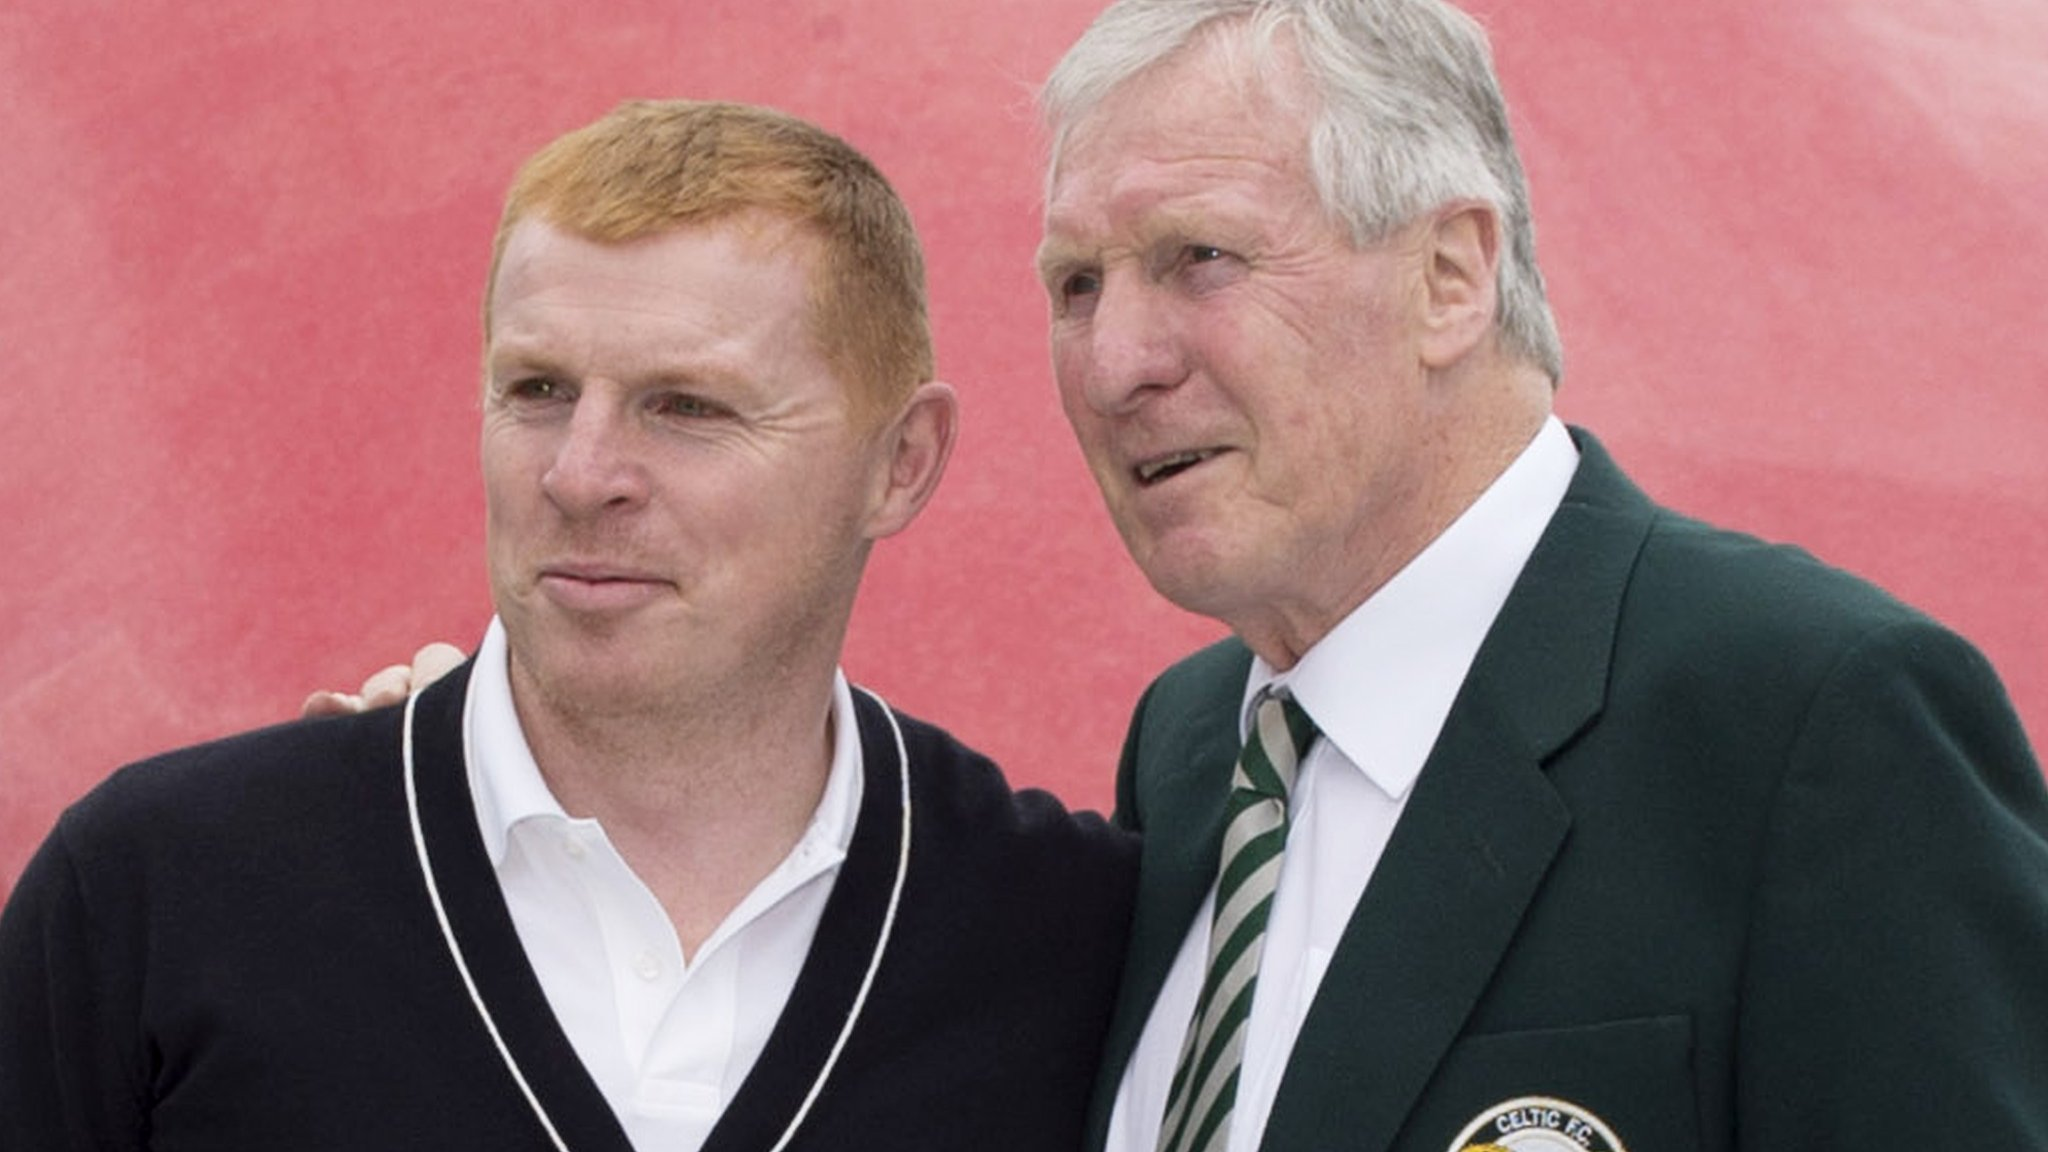 Neil Lennon: Celtic players motivated to win treble treble for Billy McNeill